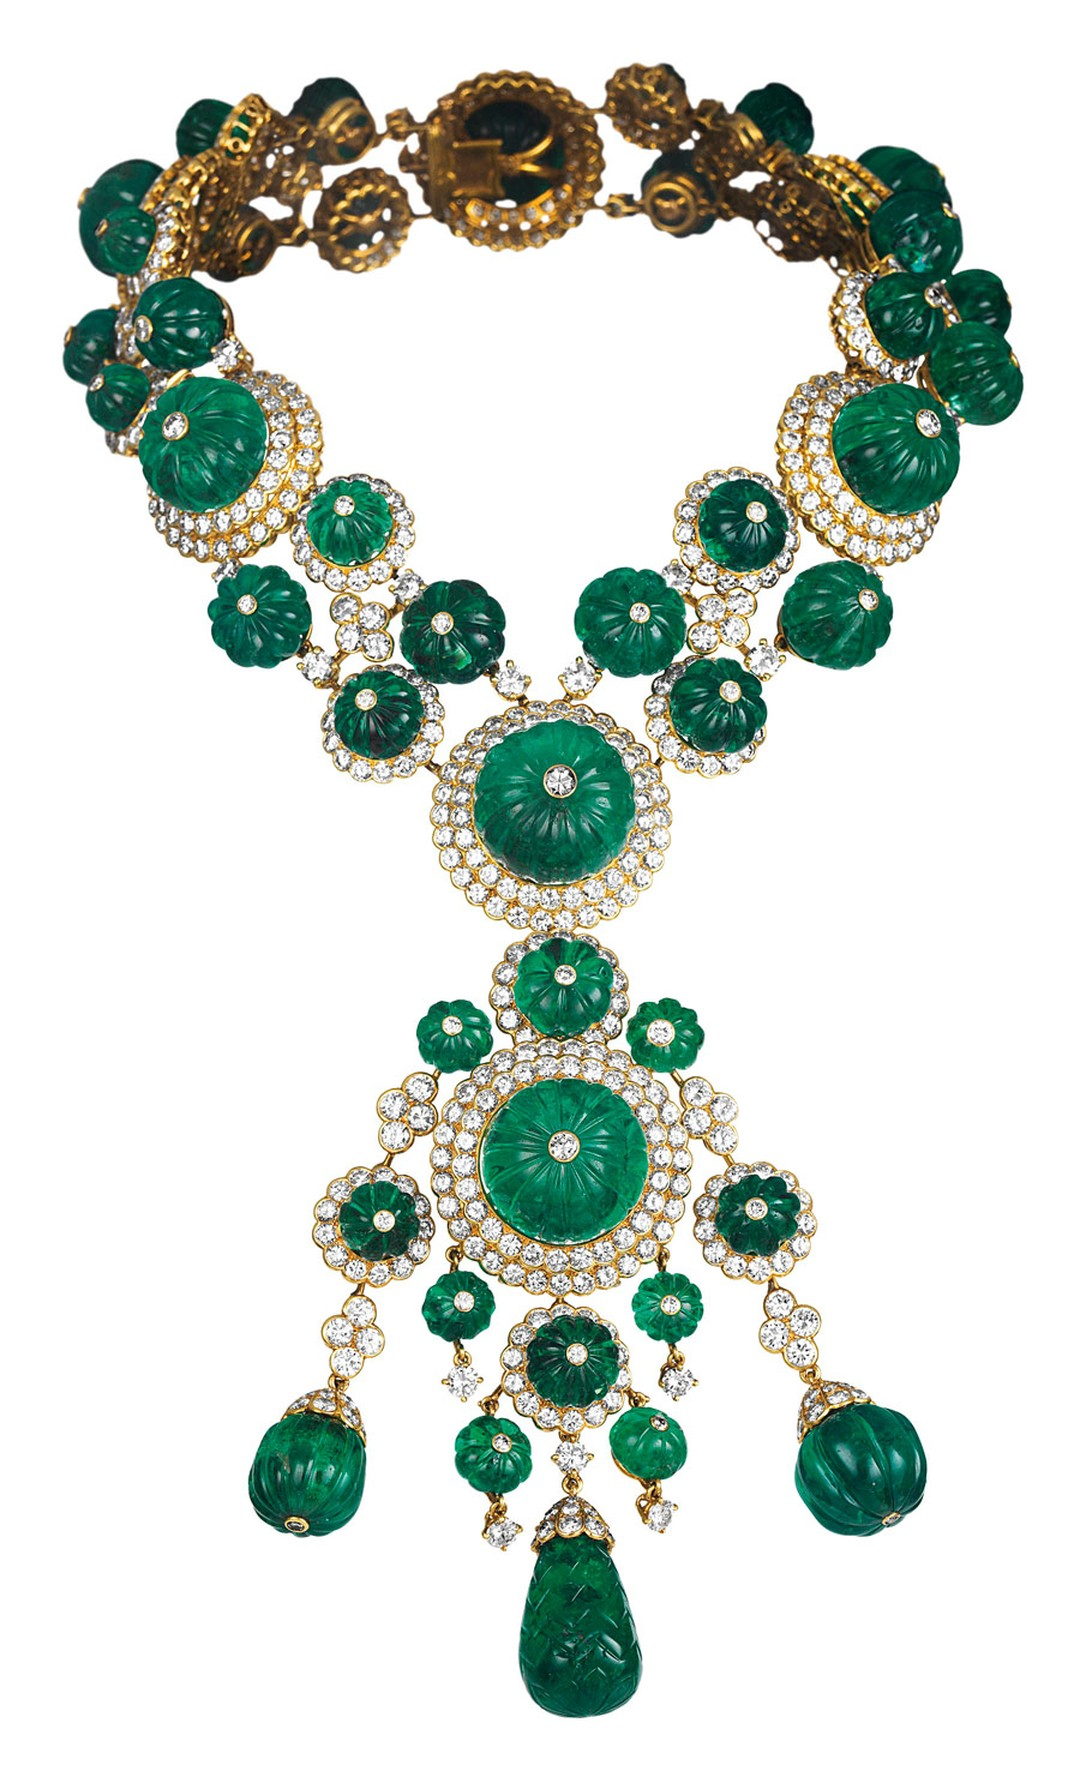 Van-Cleef-Arpels-Indian-necklace-transformable-into-two-bracelets-and-a-pendant-1971-Van-Cleef-Arpels-Collection_1.jpg